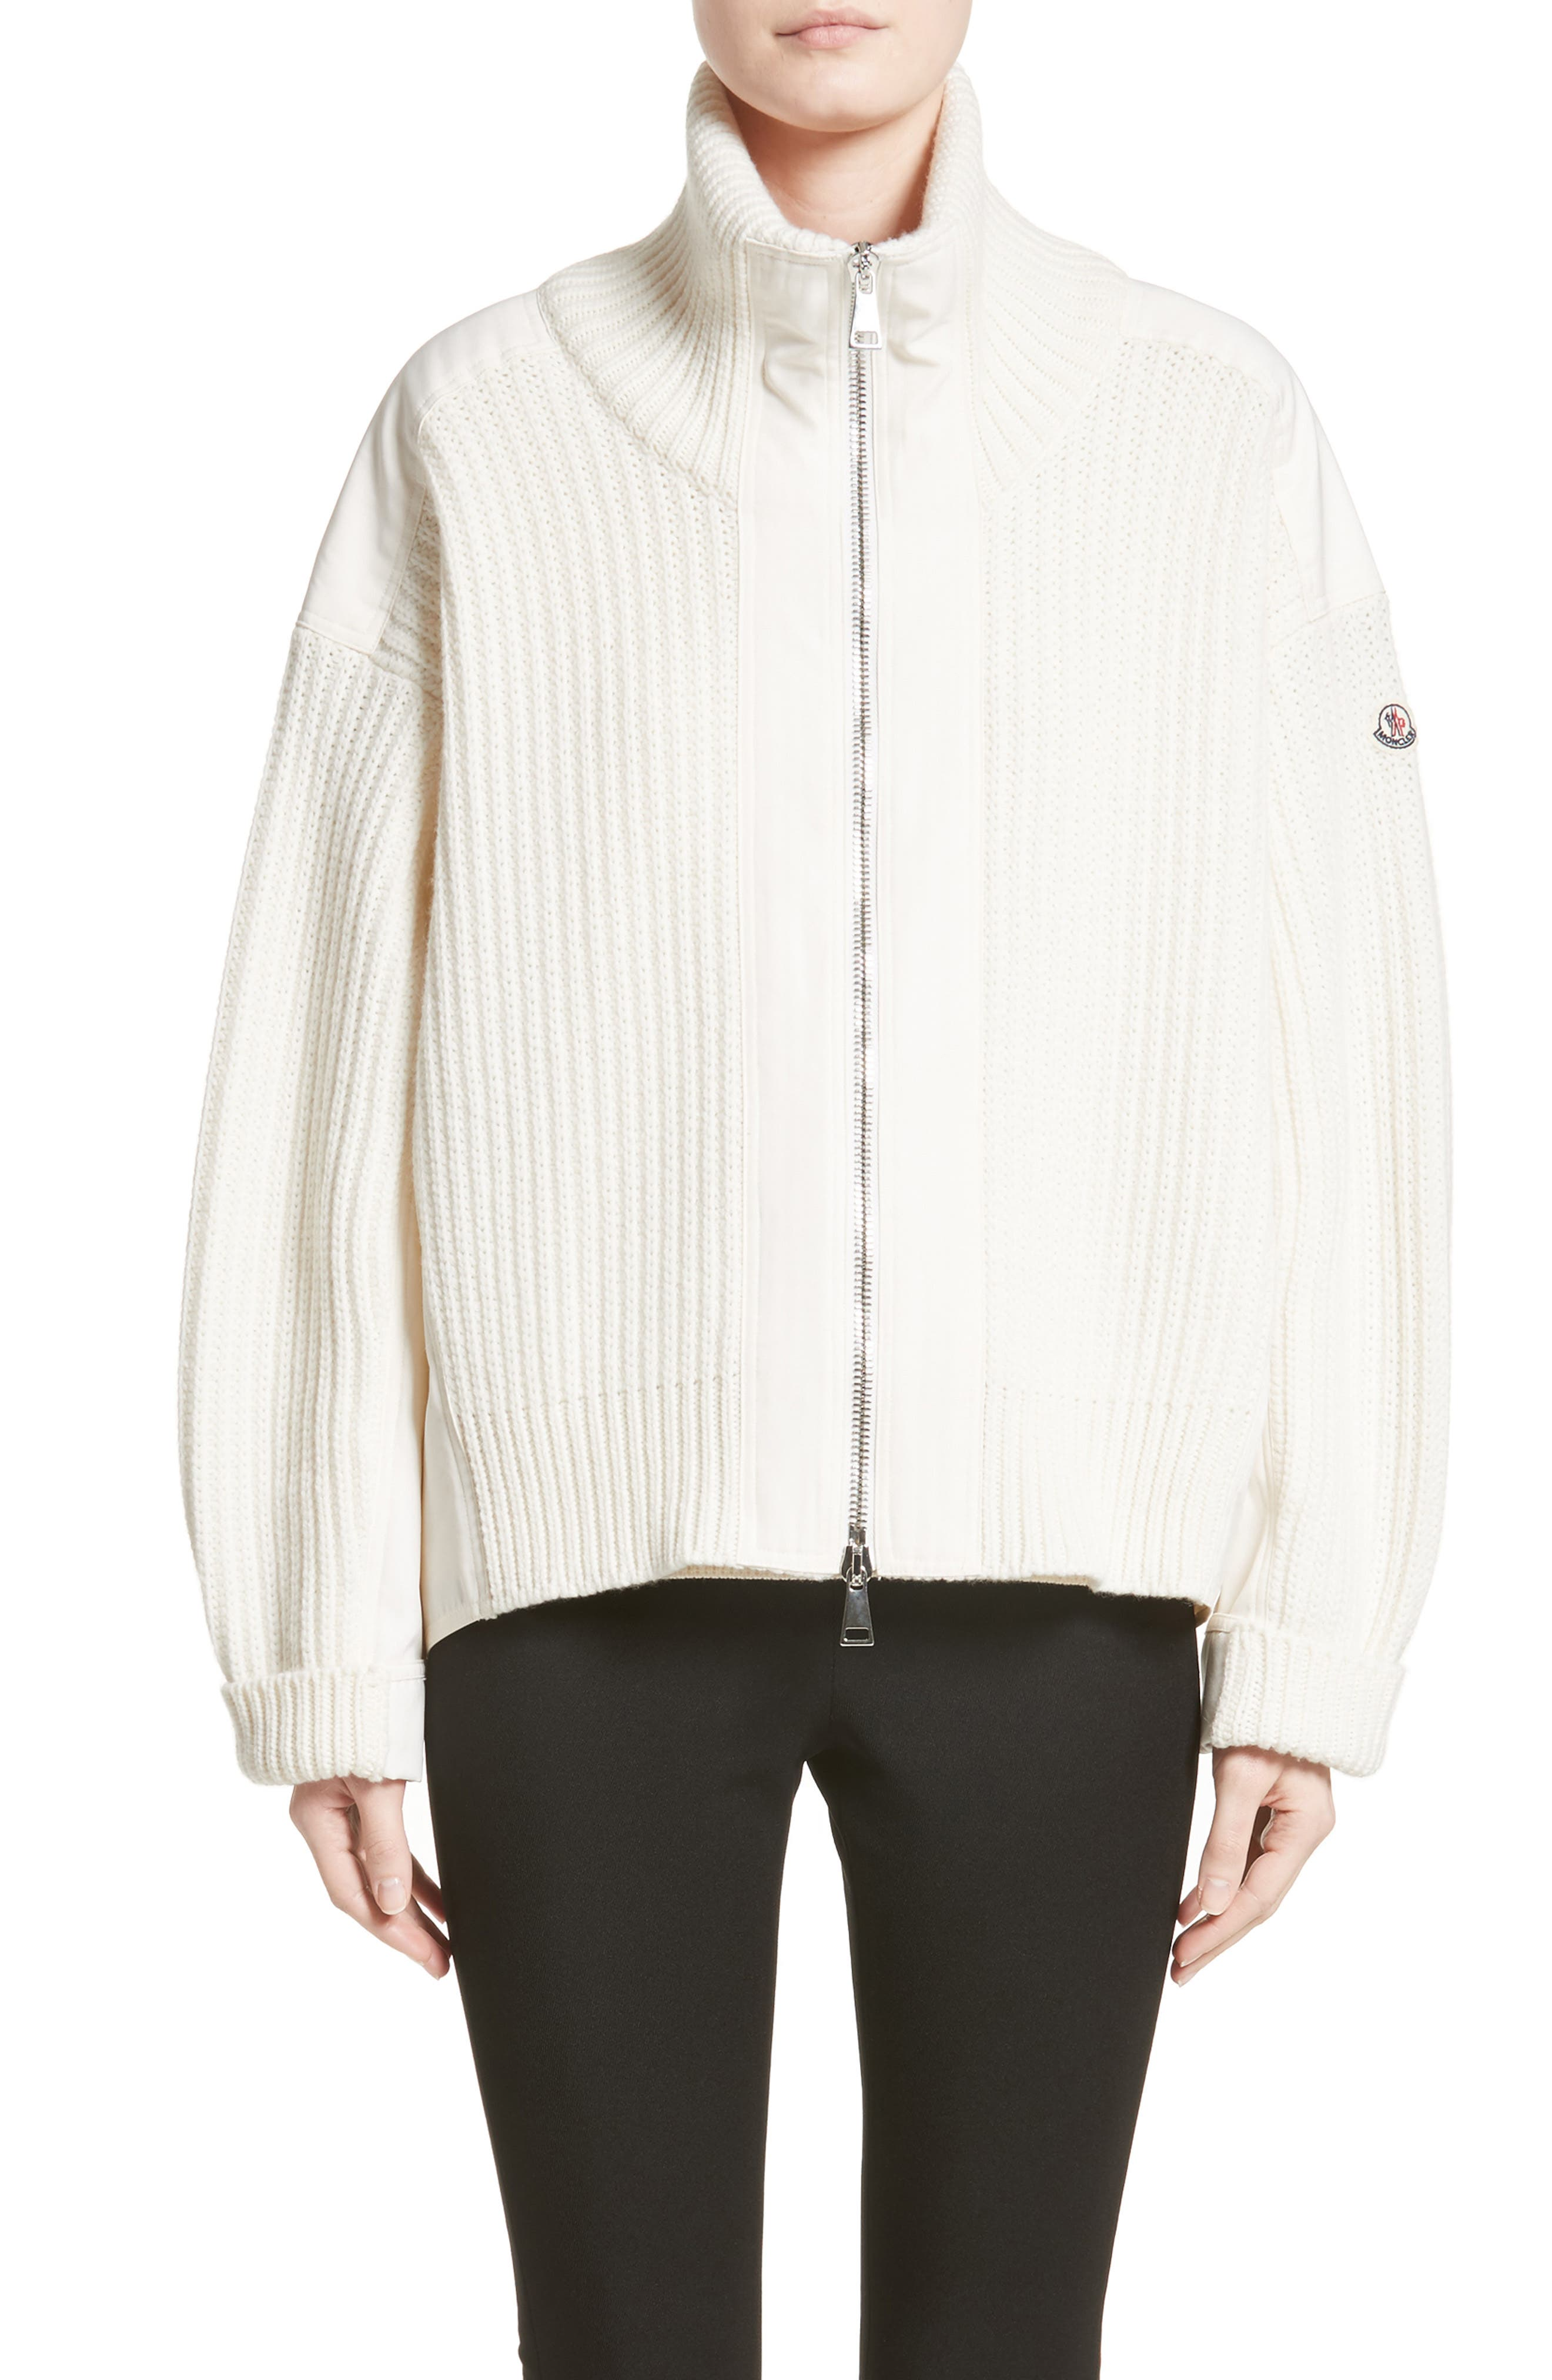 Wool & Cashmere Cardigan,                         Main,                         color, 100